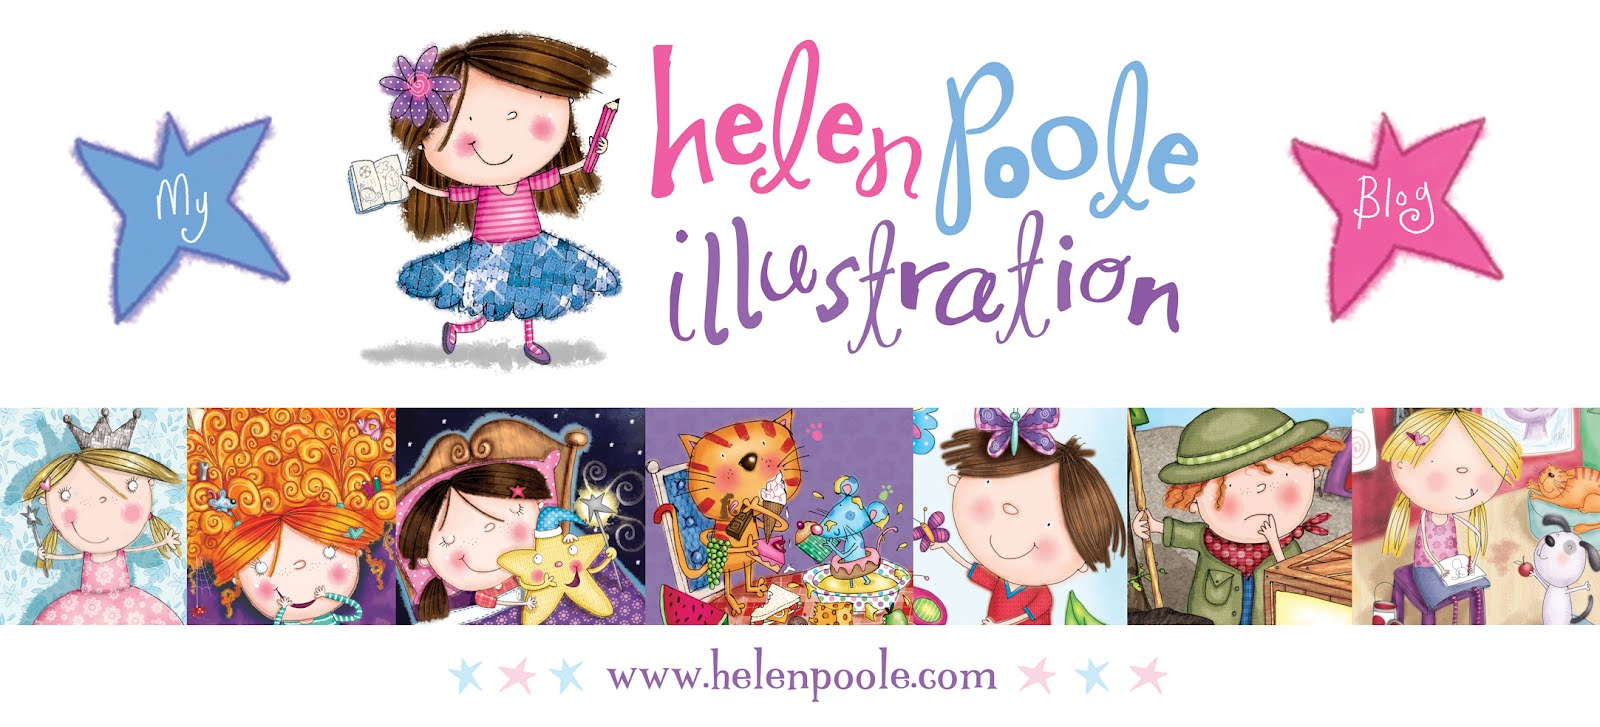 Helen Poole Illustration